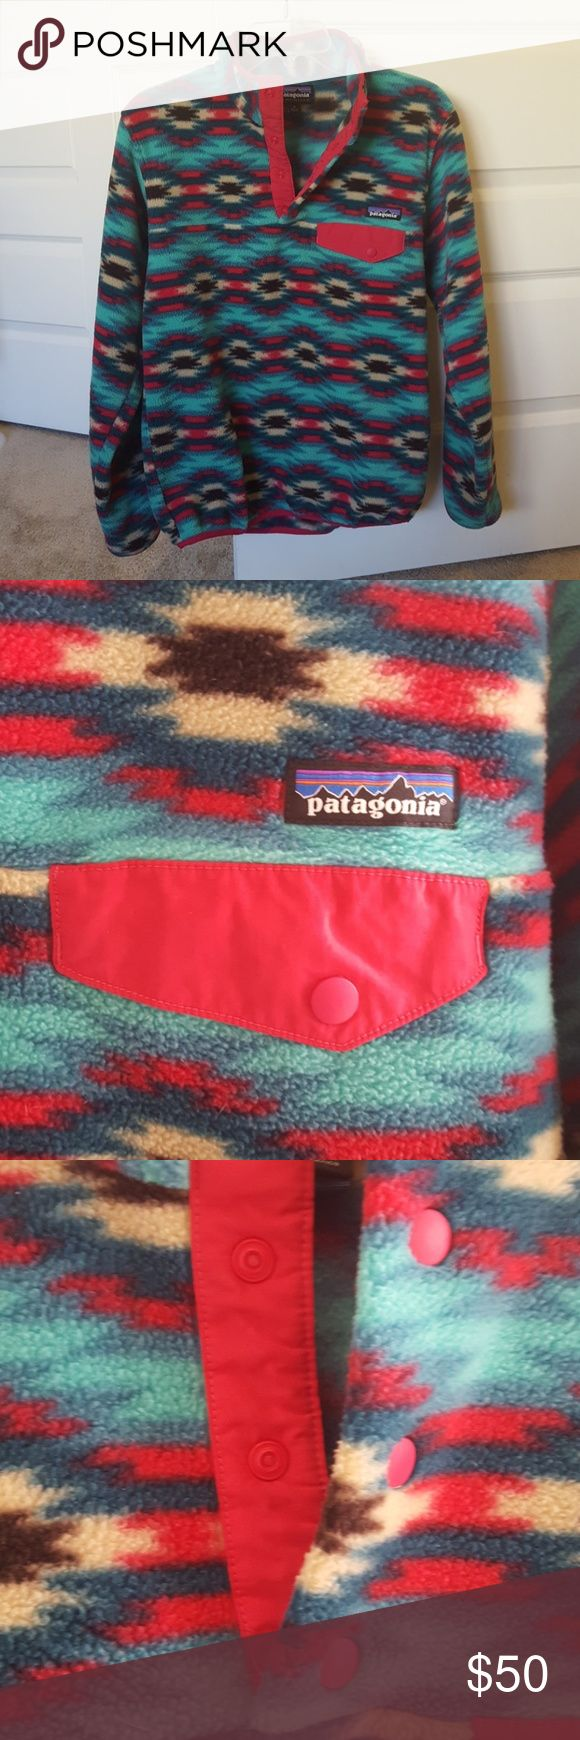 Patagonia Synchilla Sweater sz Small Fun and colorful fleece from Patagonia! Beautiful emerald and pink shades with cream and brown in a fun pattern. Only used a few times and selling because I have others that I use more. Patagonia Sweaters